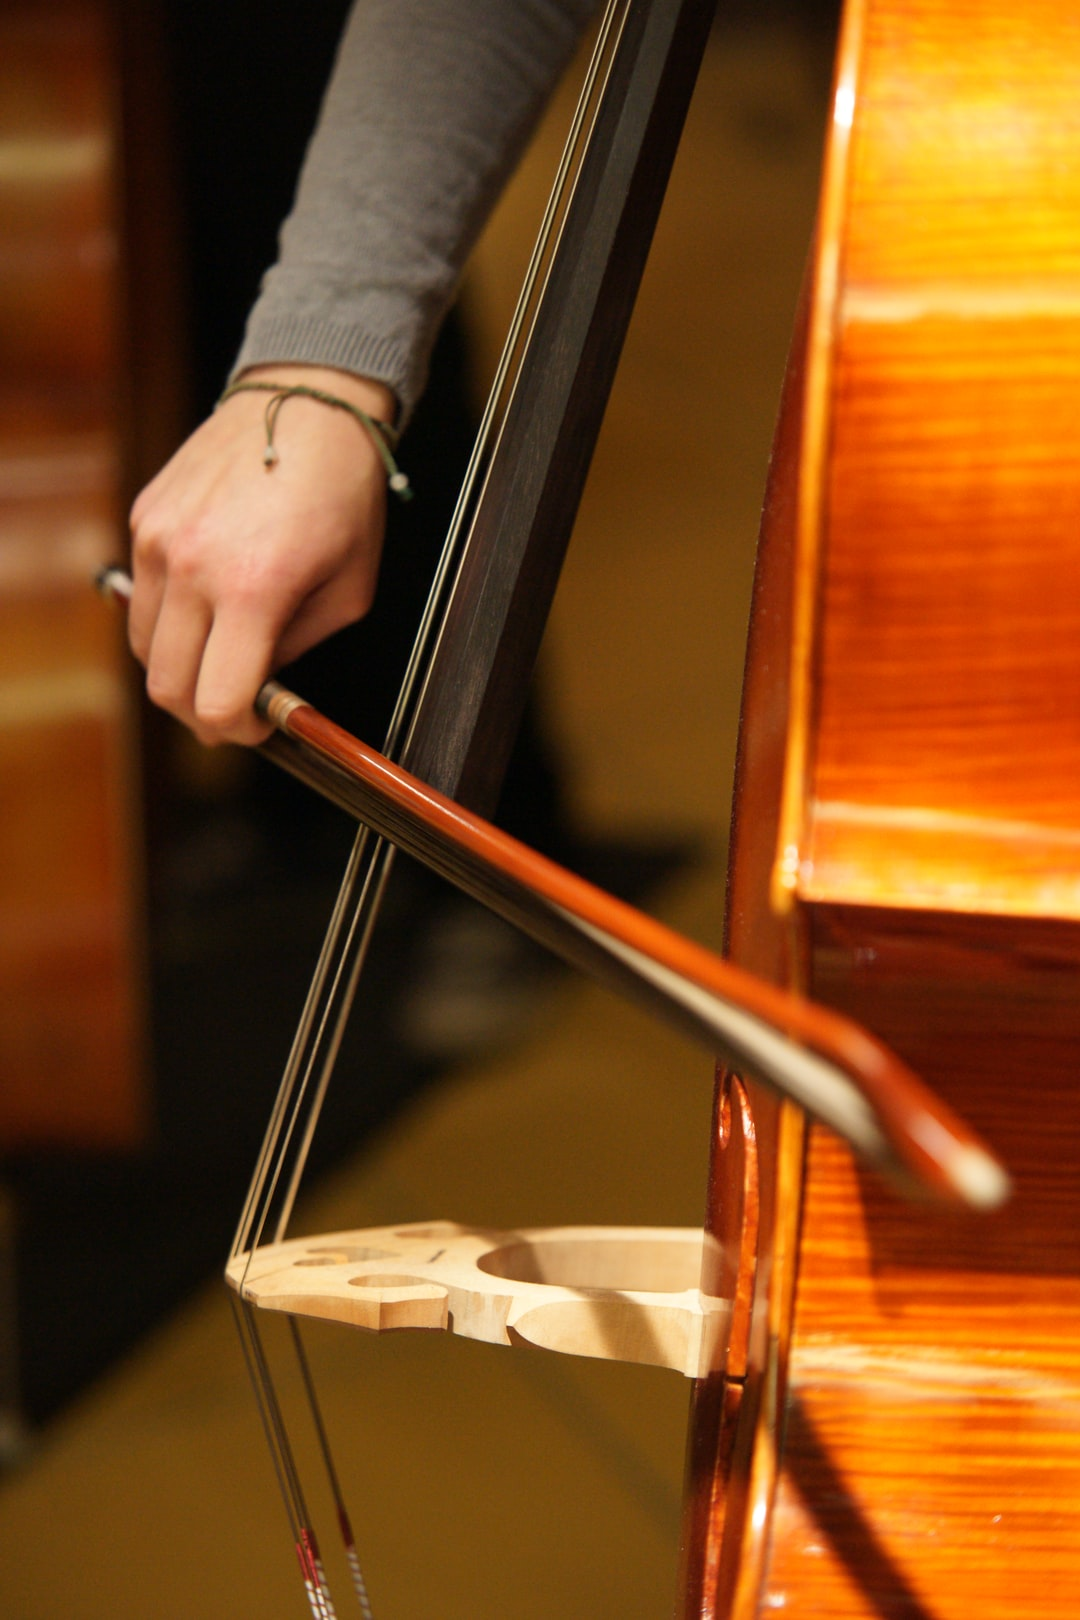 The Most Expensive Cello And Bow In The World